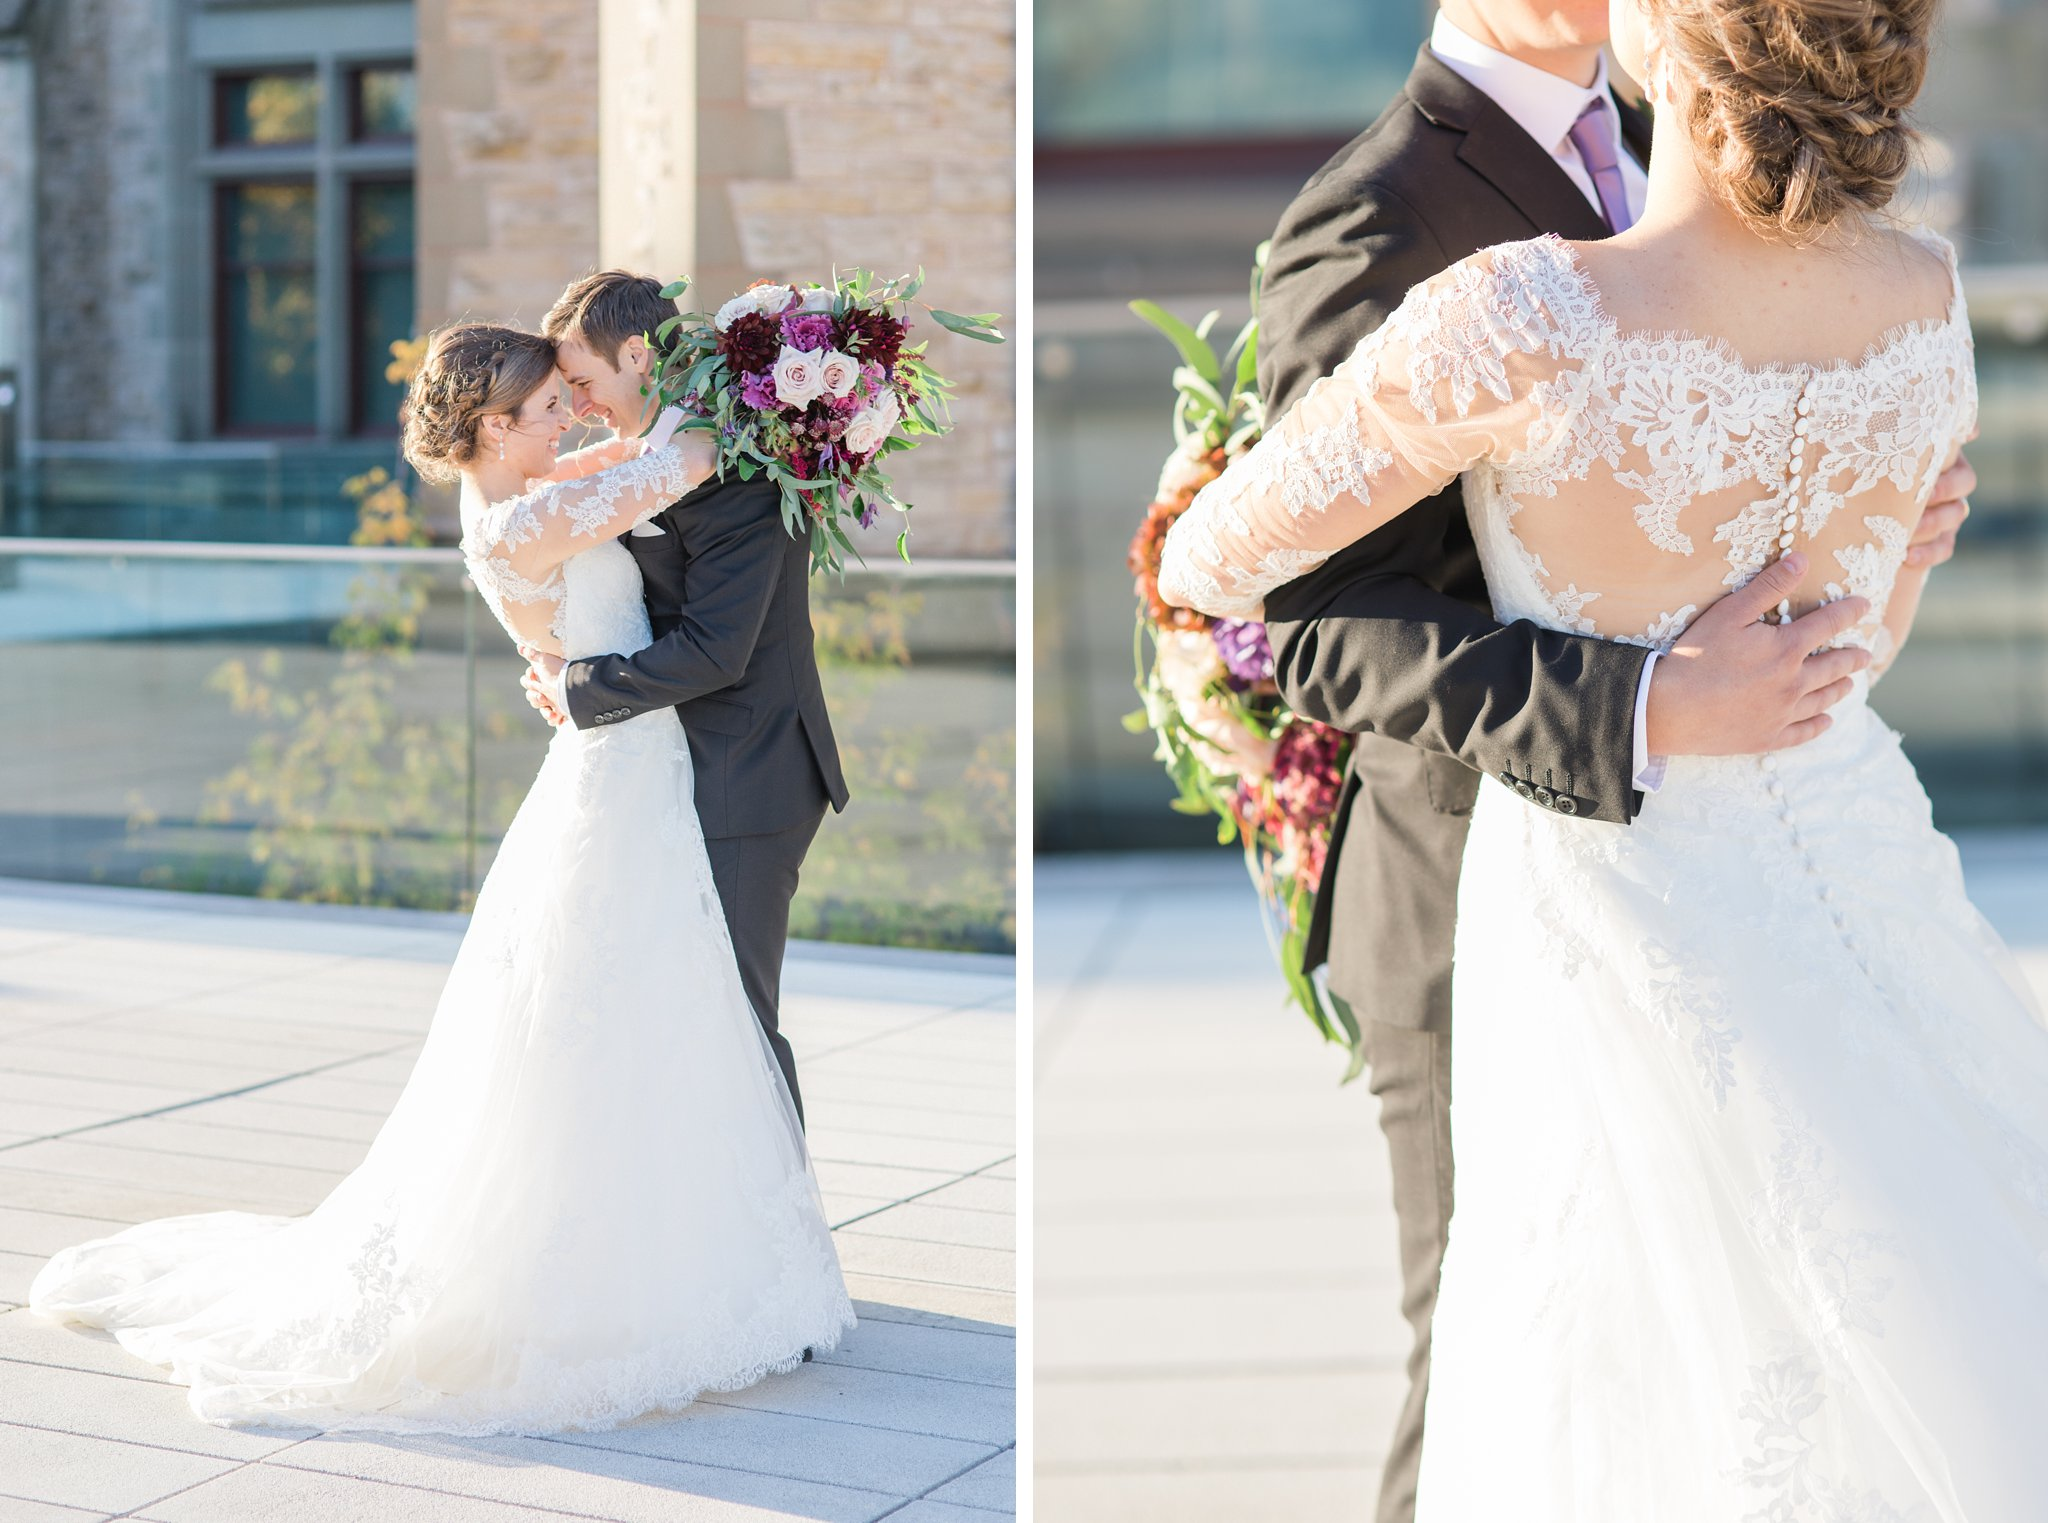 A Festive Fall Wedding at the Canadian Museum of Nature